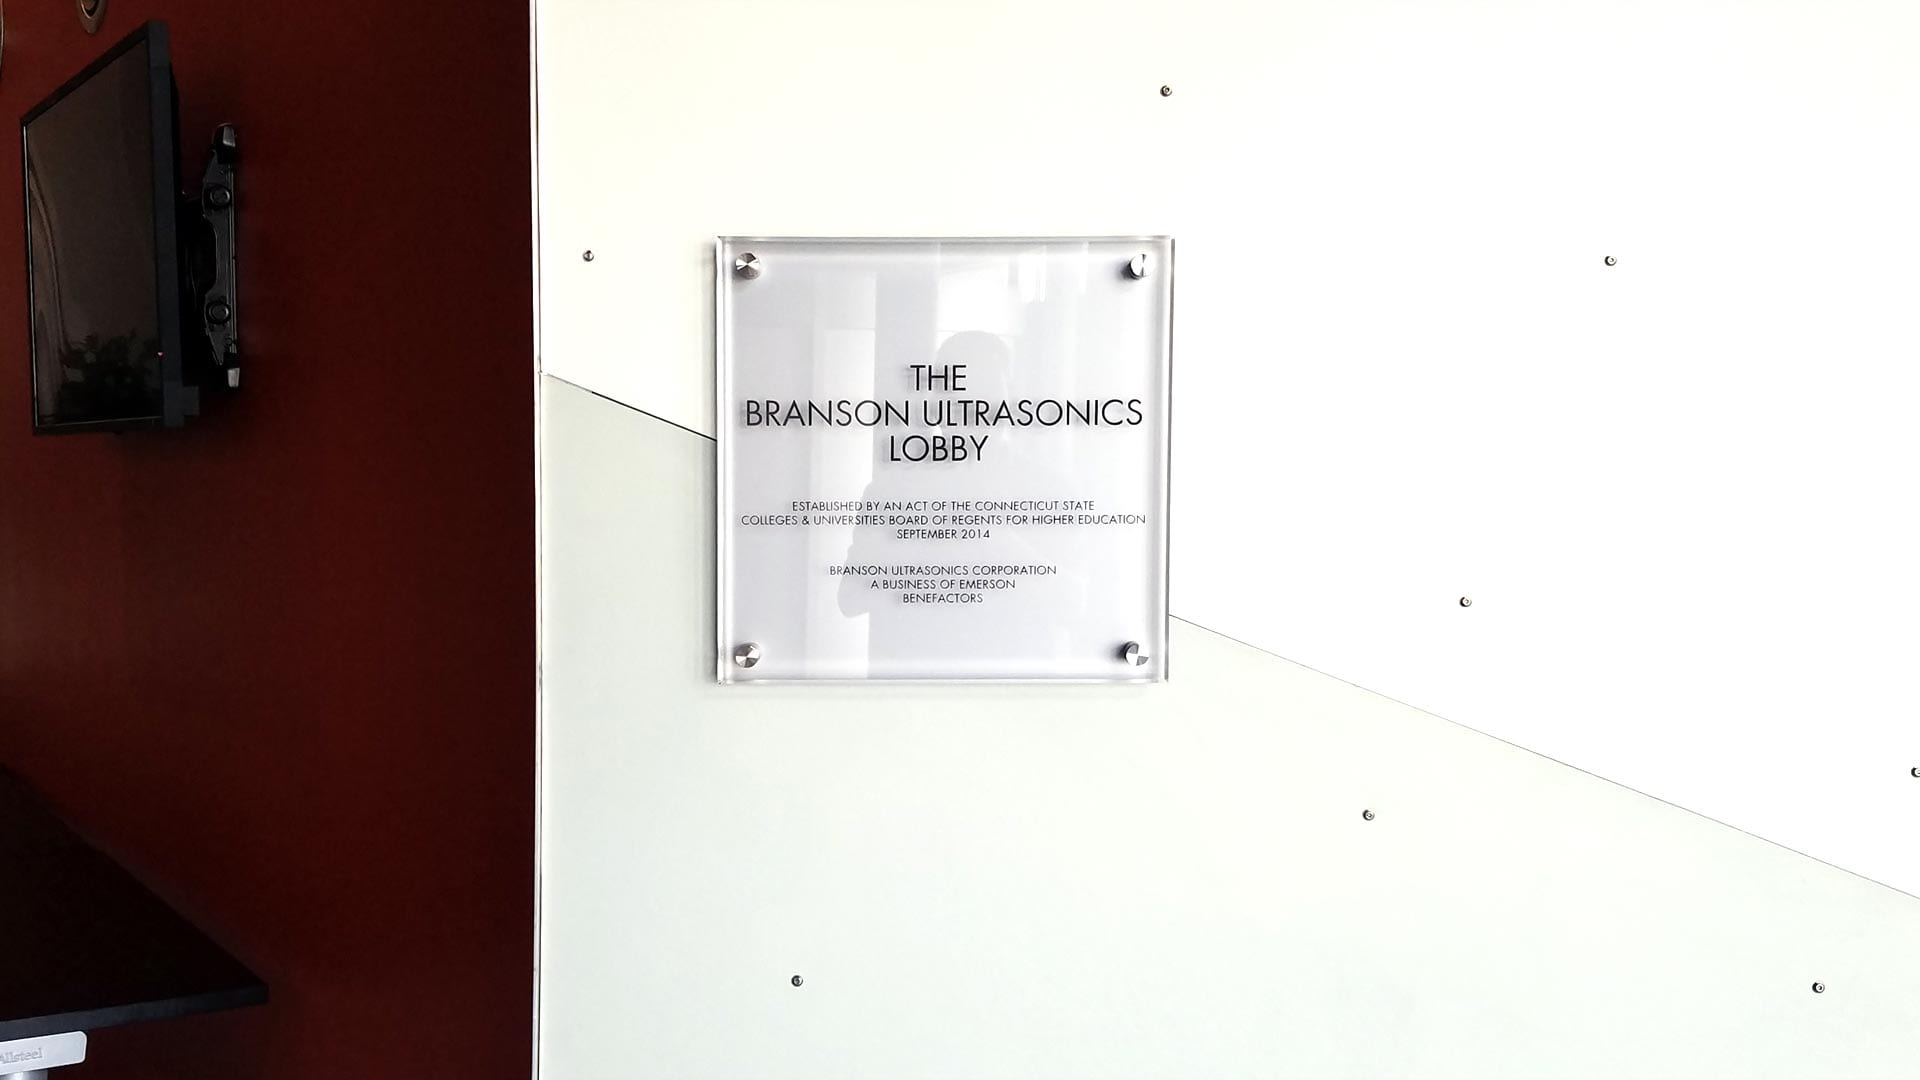 Glass Plaque for Branson Ultrasonics Lobby - Plaques